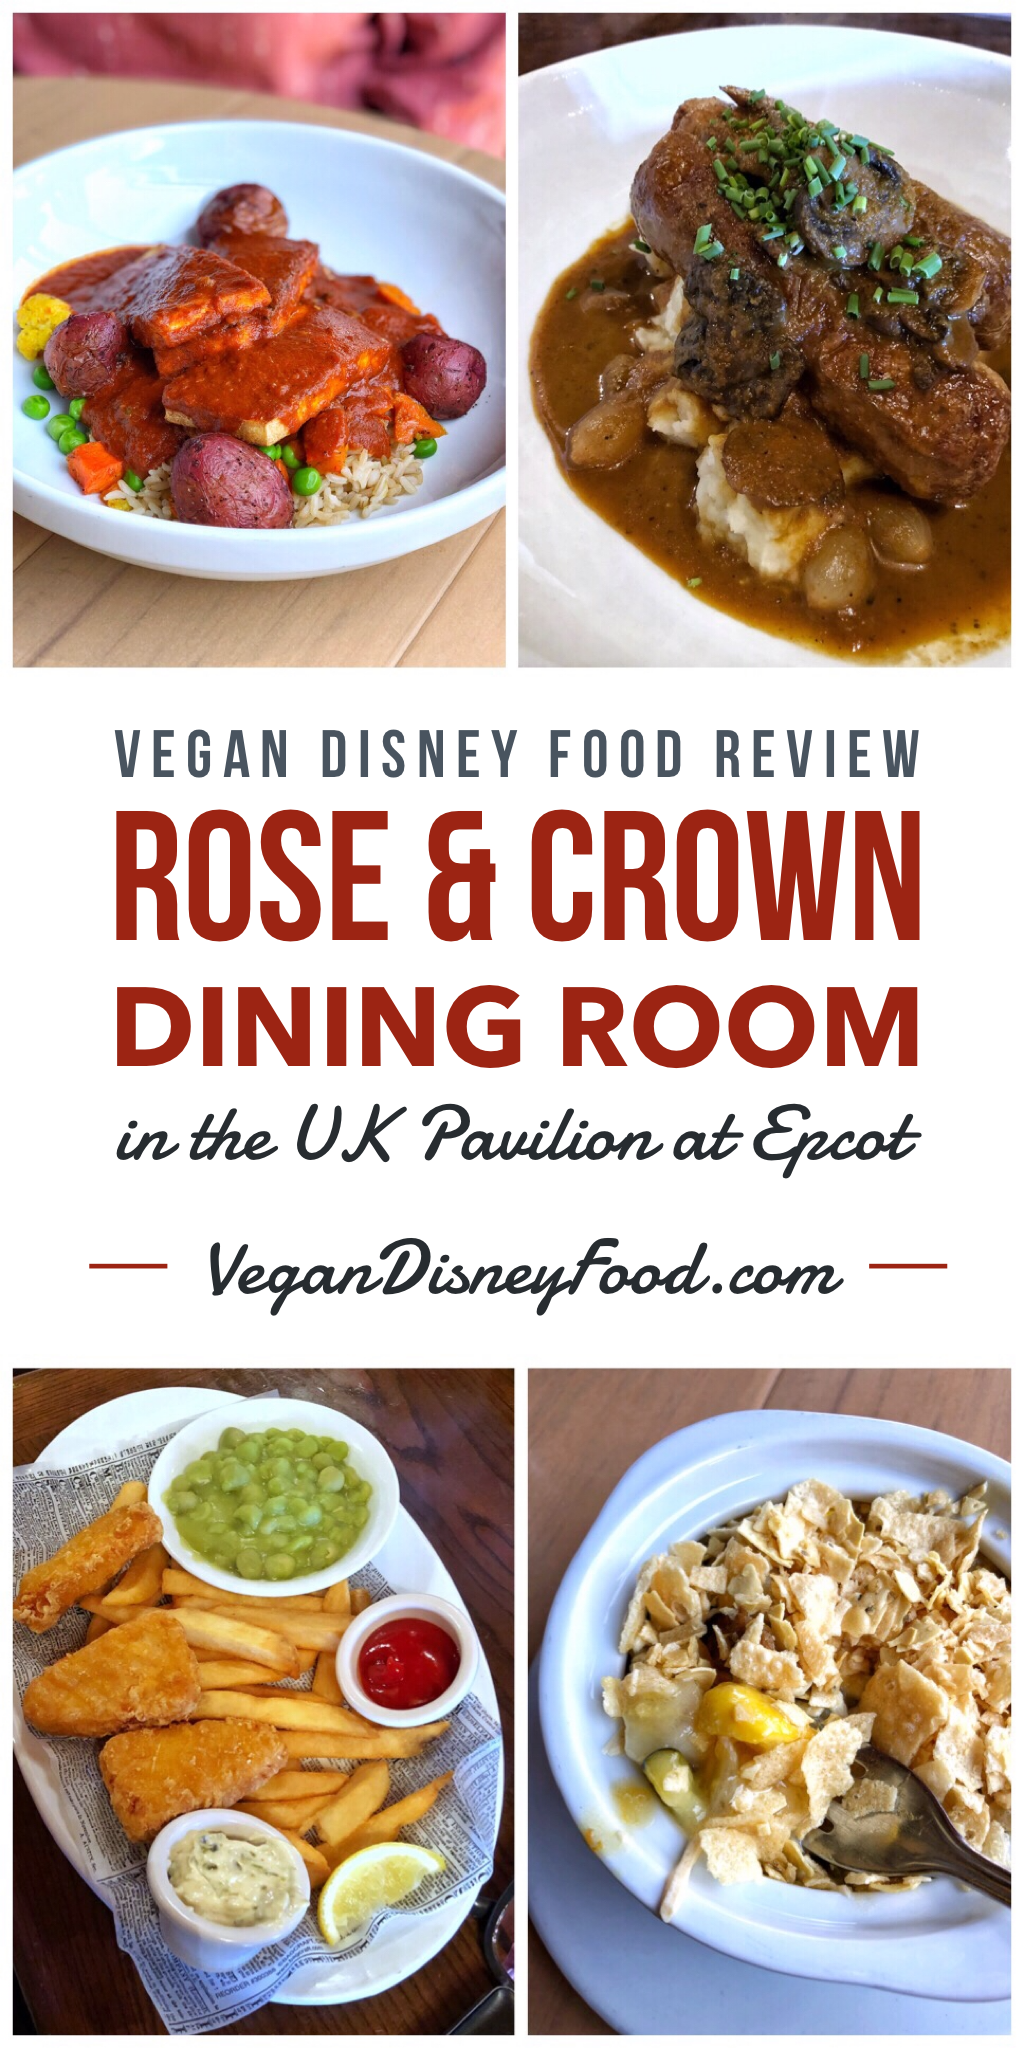 Vegan Disney Food Review: Rose & Crown Dining Room in the UK Pavilion at Epcot